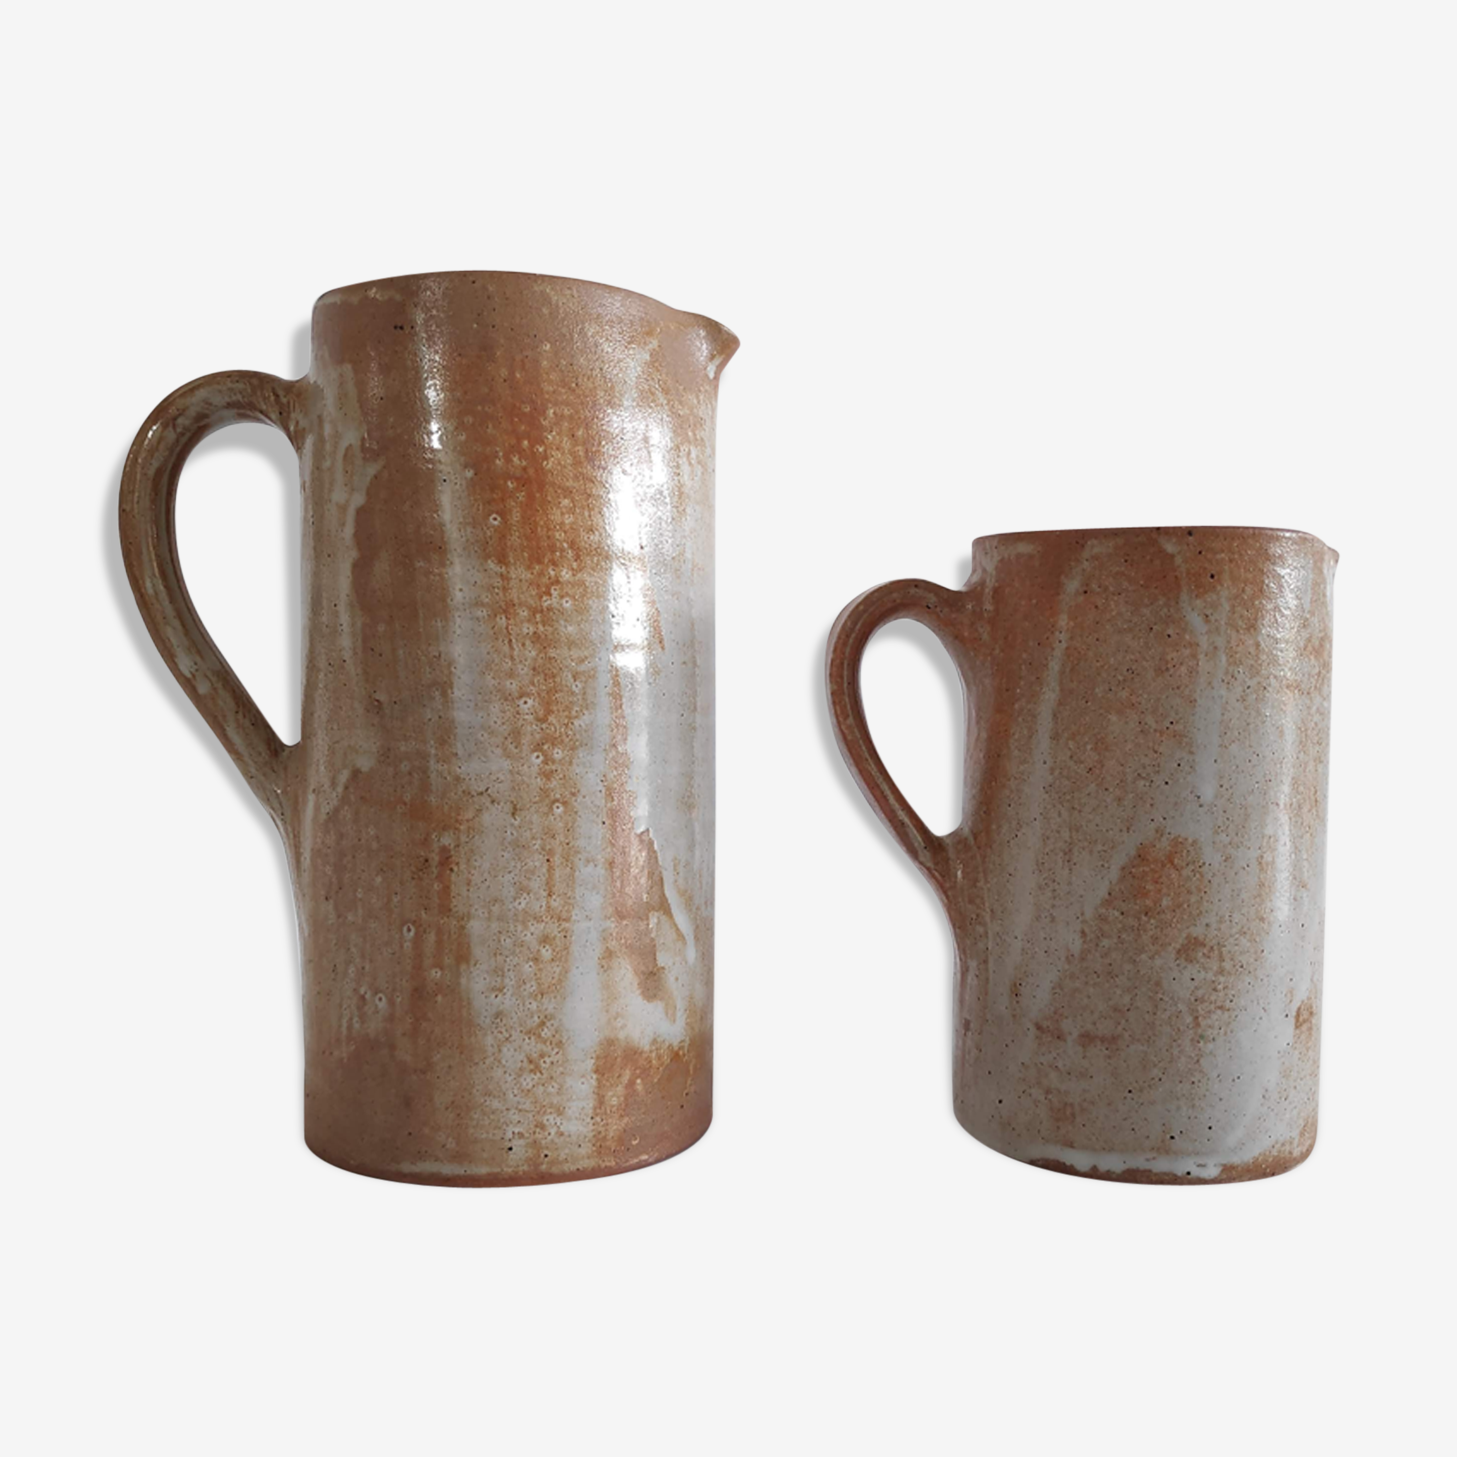 Pair of pitchers in glazed stoneware vintage rose 60s